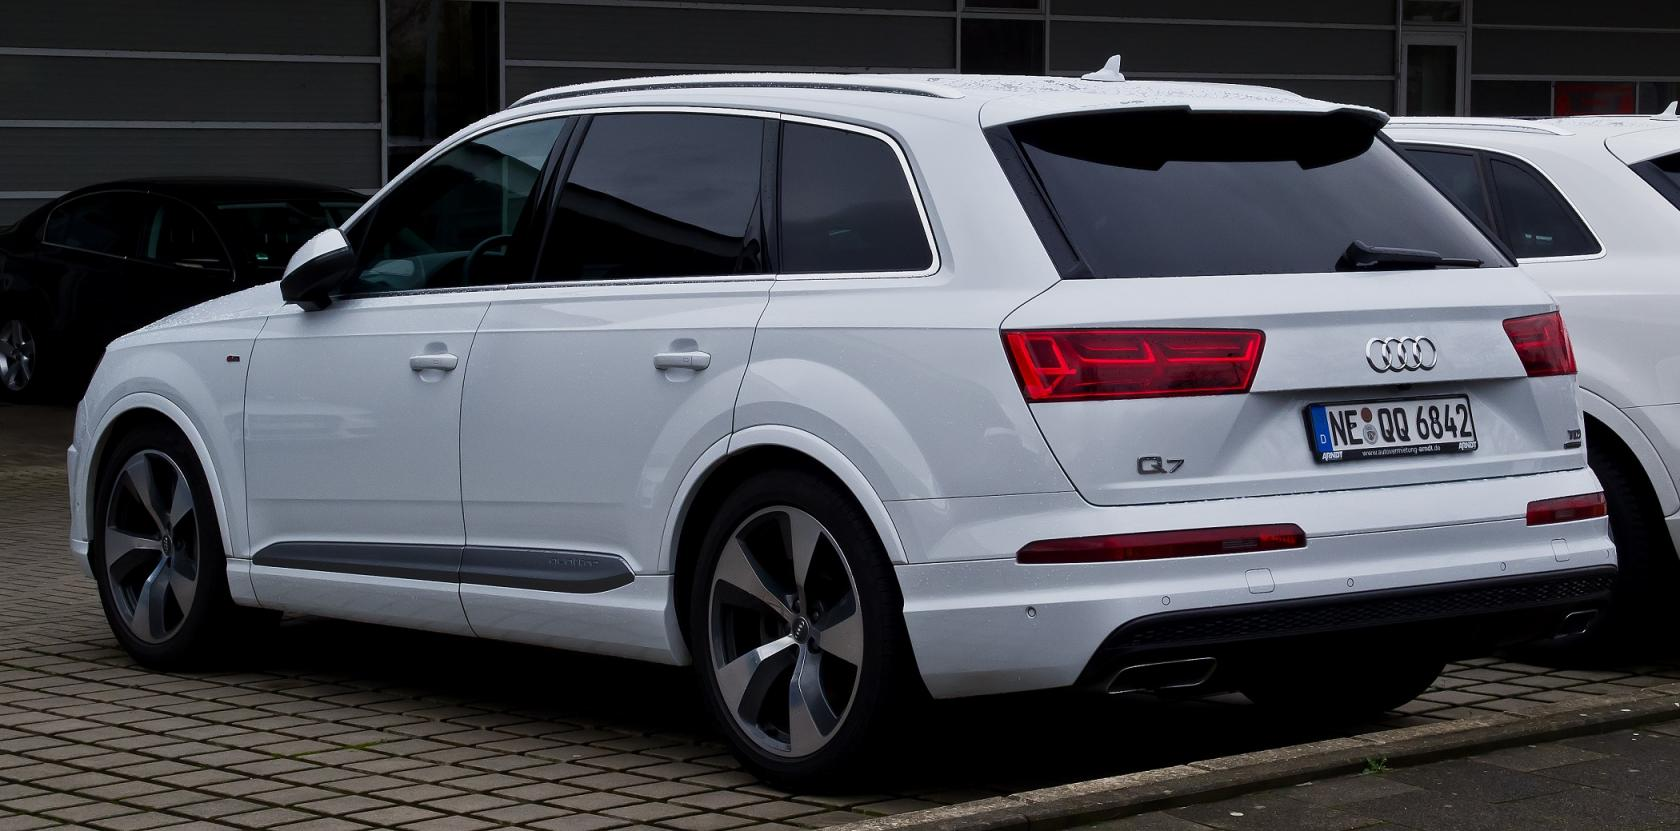 Audi q5 occasion forum uk